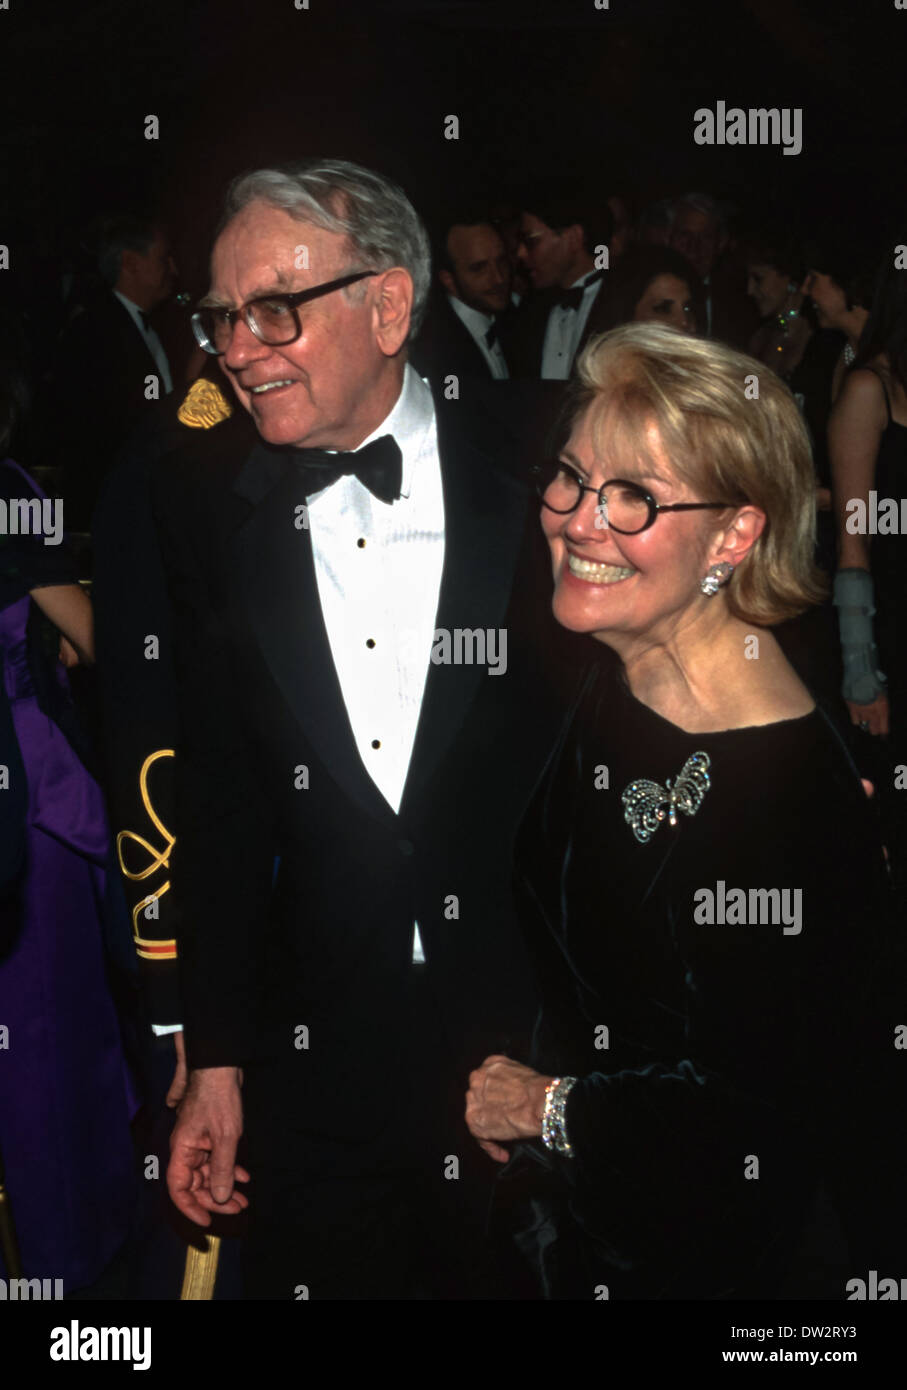 Investor Warren Buffett and wife Susan Buffett arrive for the State Dinner for British Prime Minister Tony Blair May 2, 1998 at the White House in Washington, DC. - Stock Image